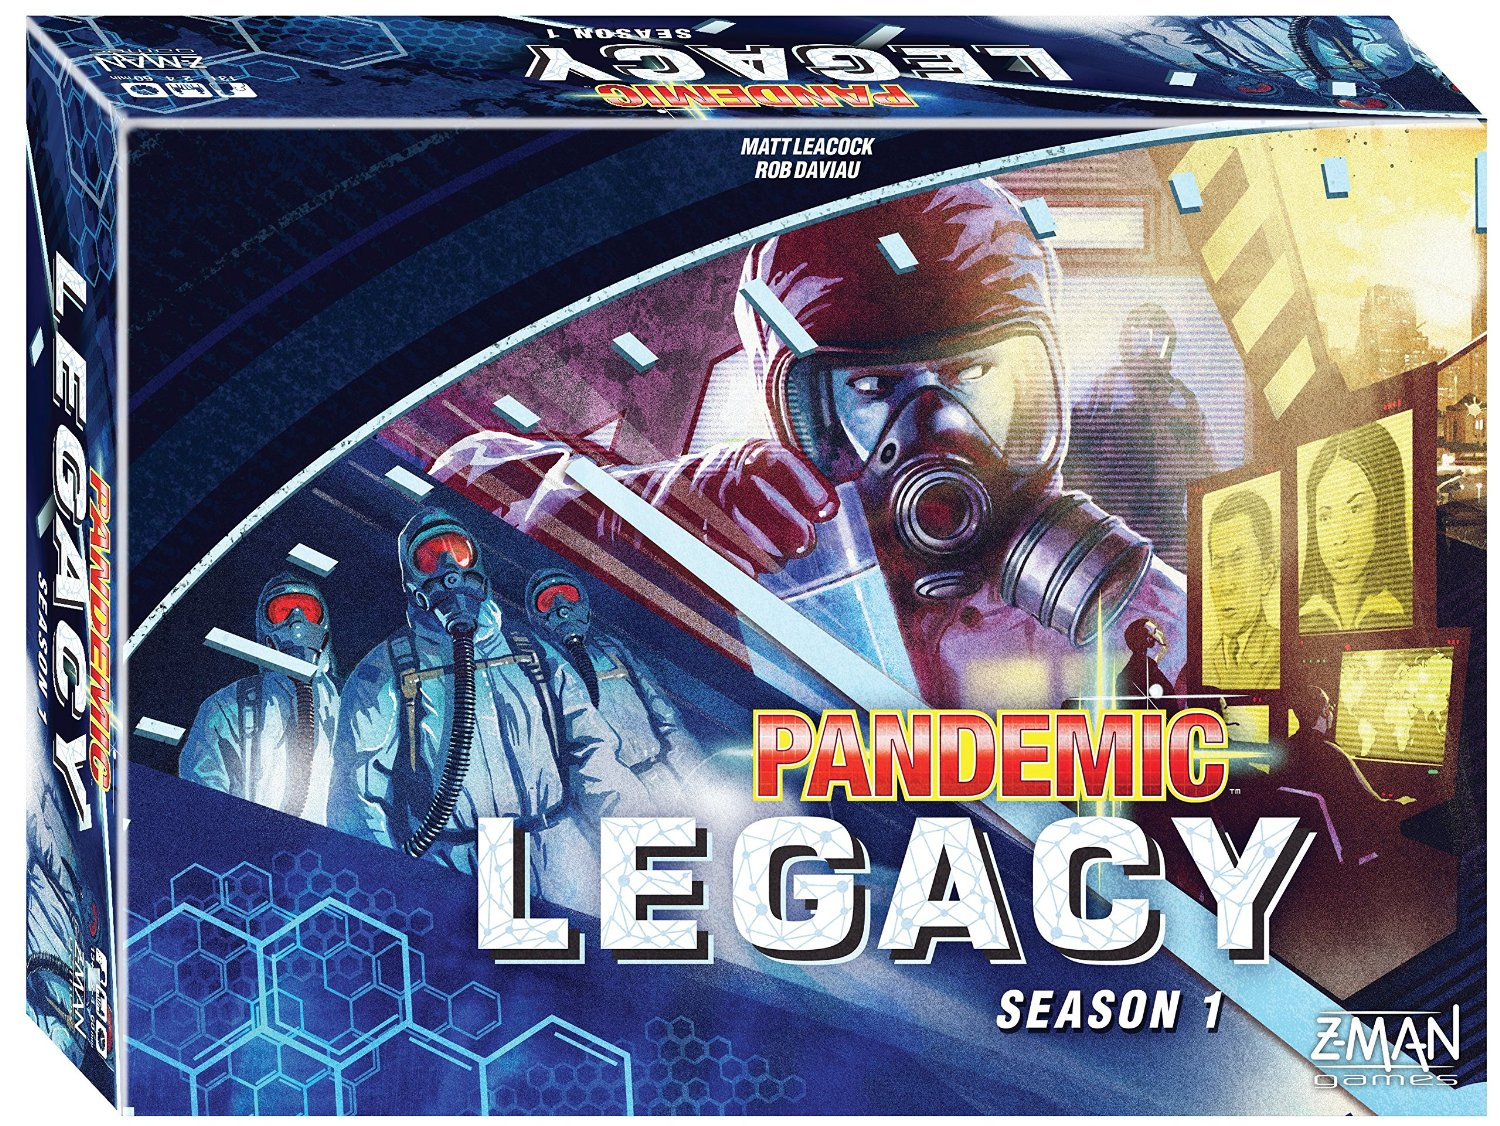 BLUE - Pandemic Legacy Season 1